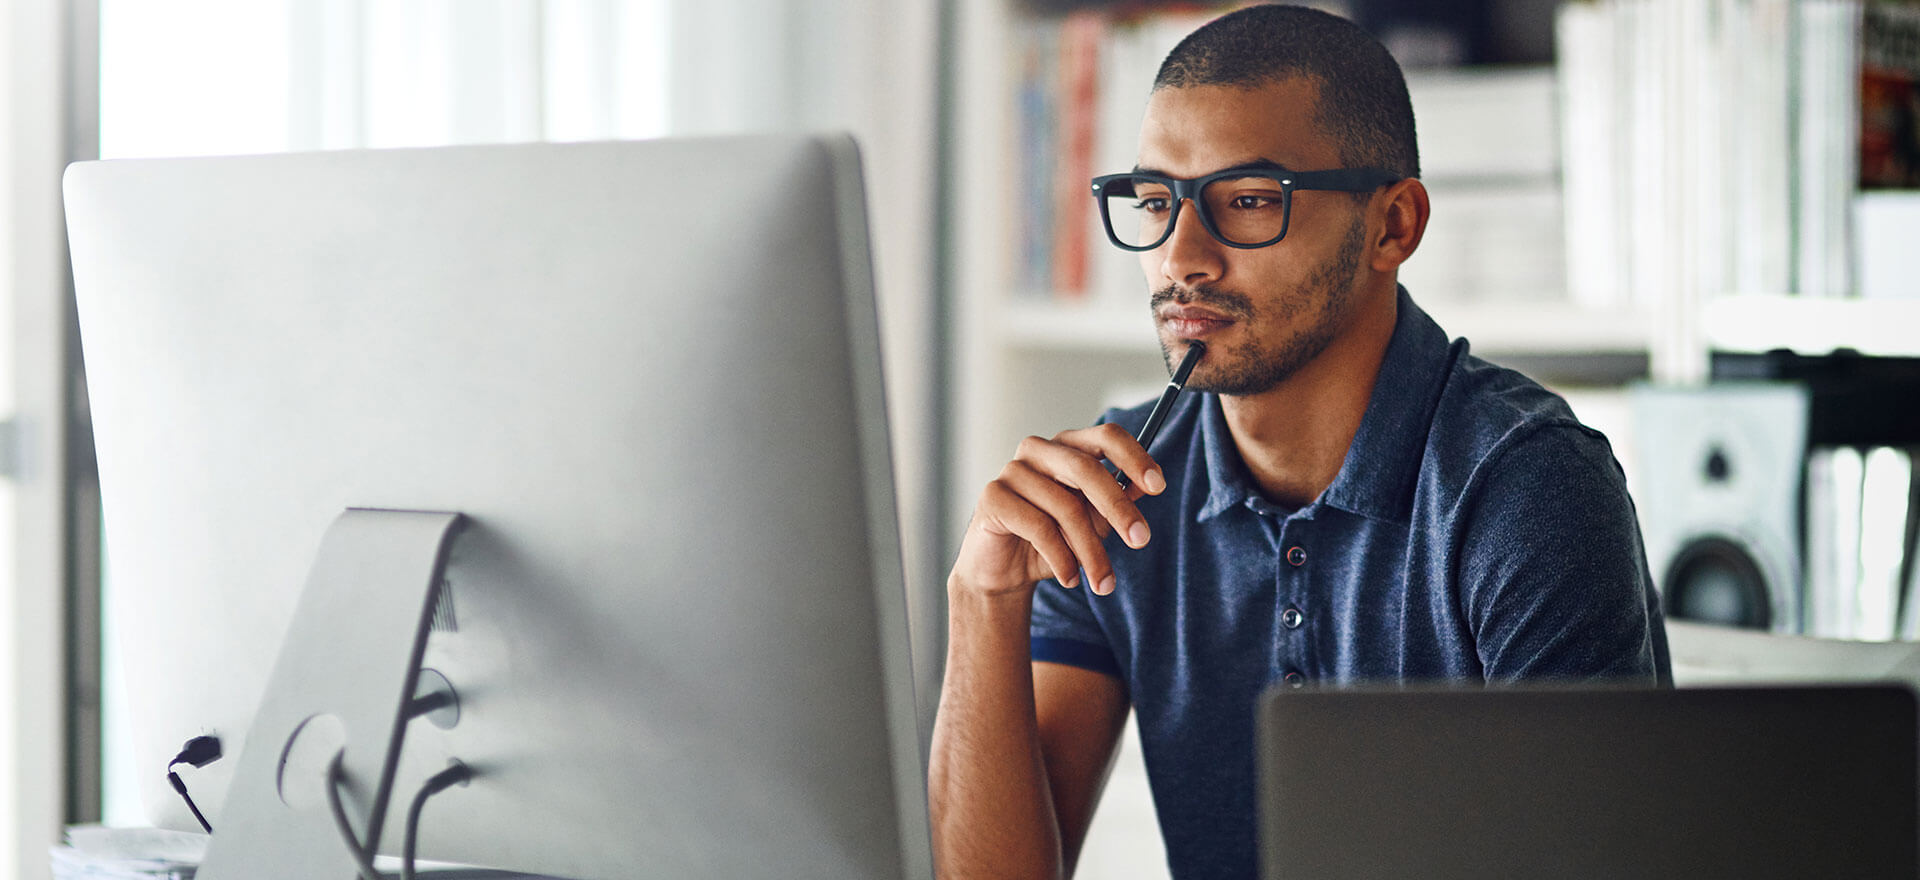 Man at computer comparing business credit card options